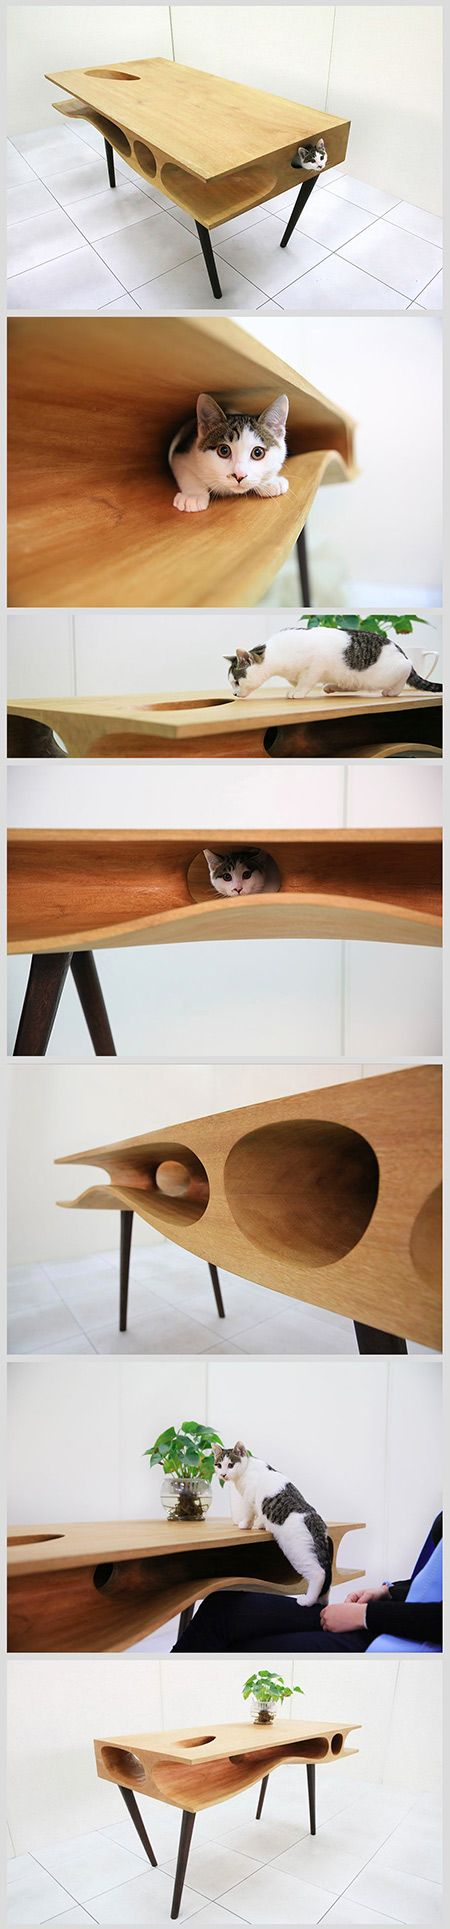 CATable was created by Ruan Hao from LYCS, an architecture firm based in Hangzhou and Hong Kong. Especially designed for cats to explore and sleep in, the project follows a worldwide trend: that of sharing your home with pets. The table features crannies